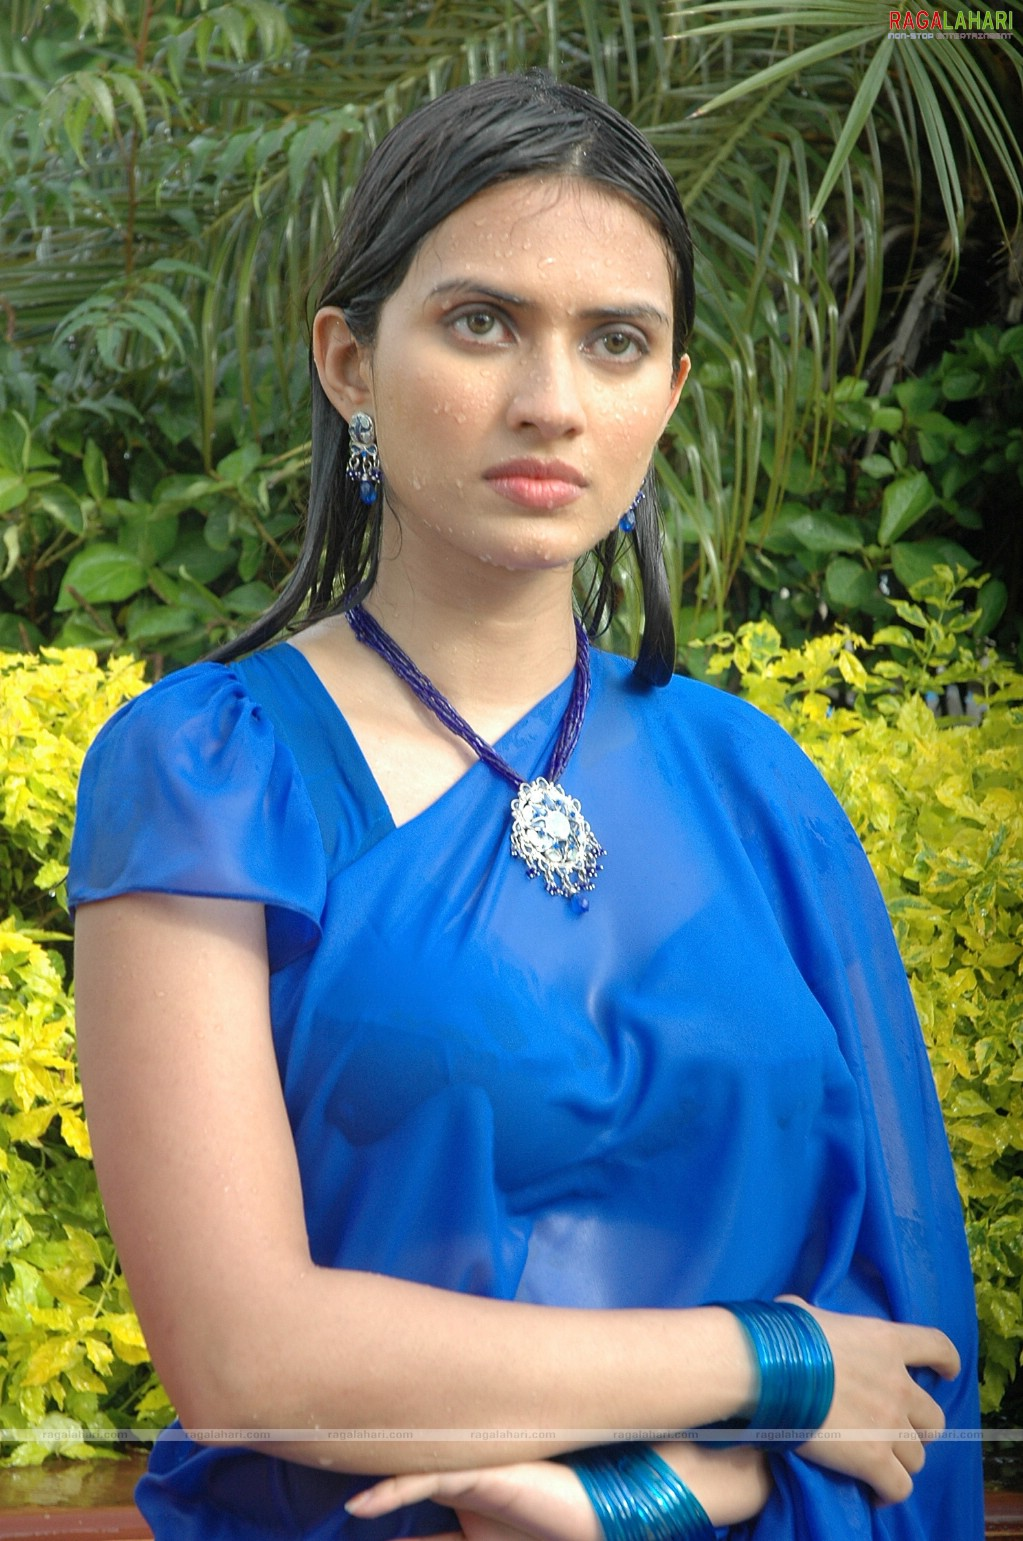 Gowri Pandit Wet Saree Photos Gowri Pandit Wet Saree Photos